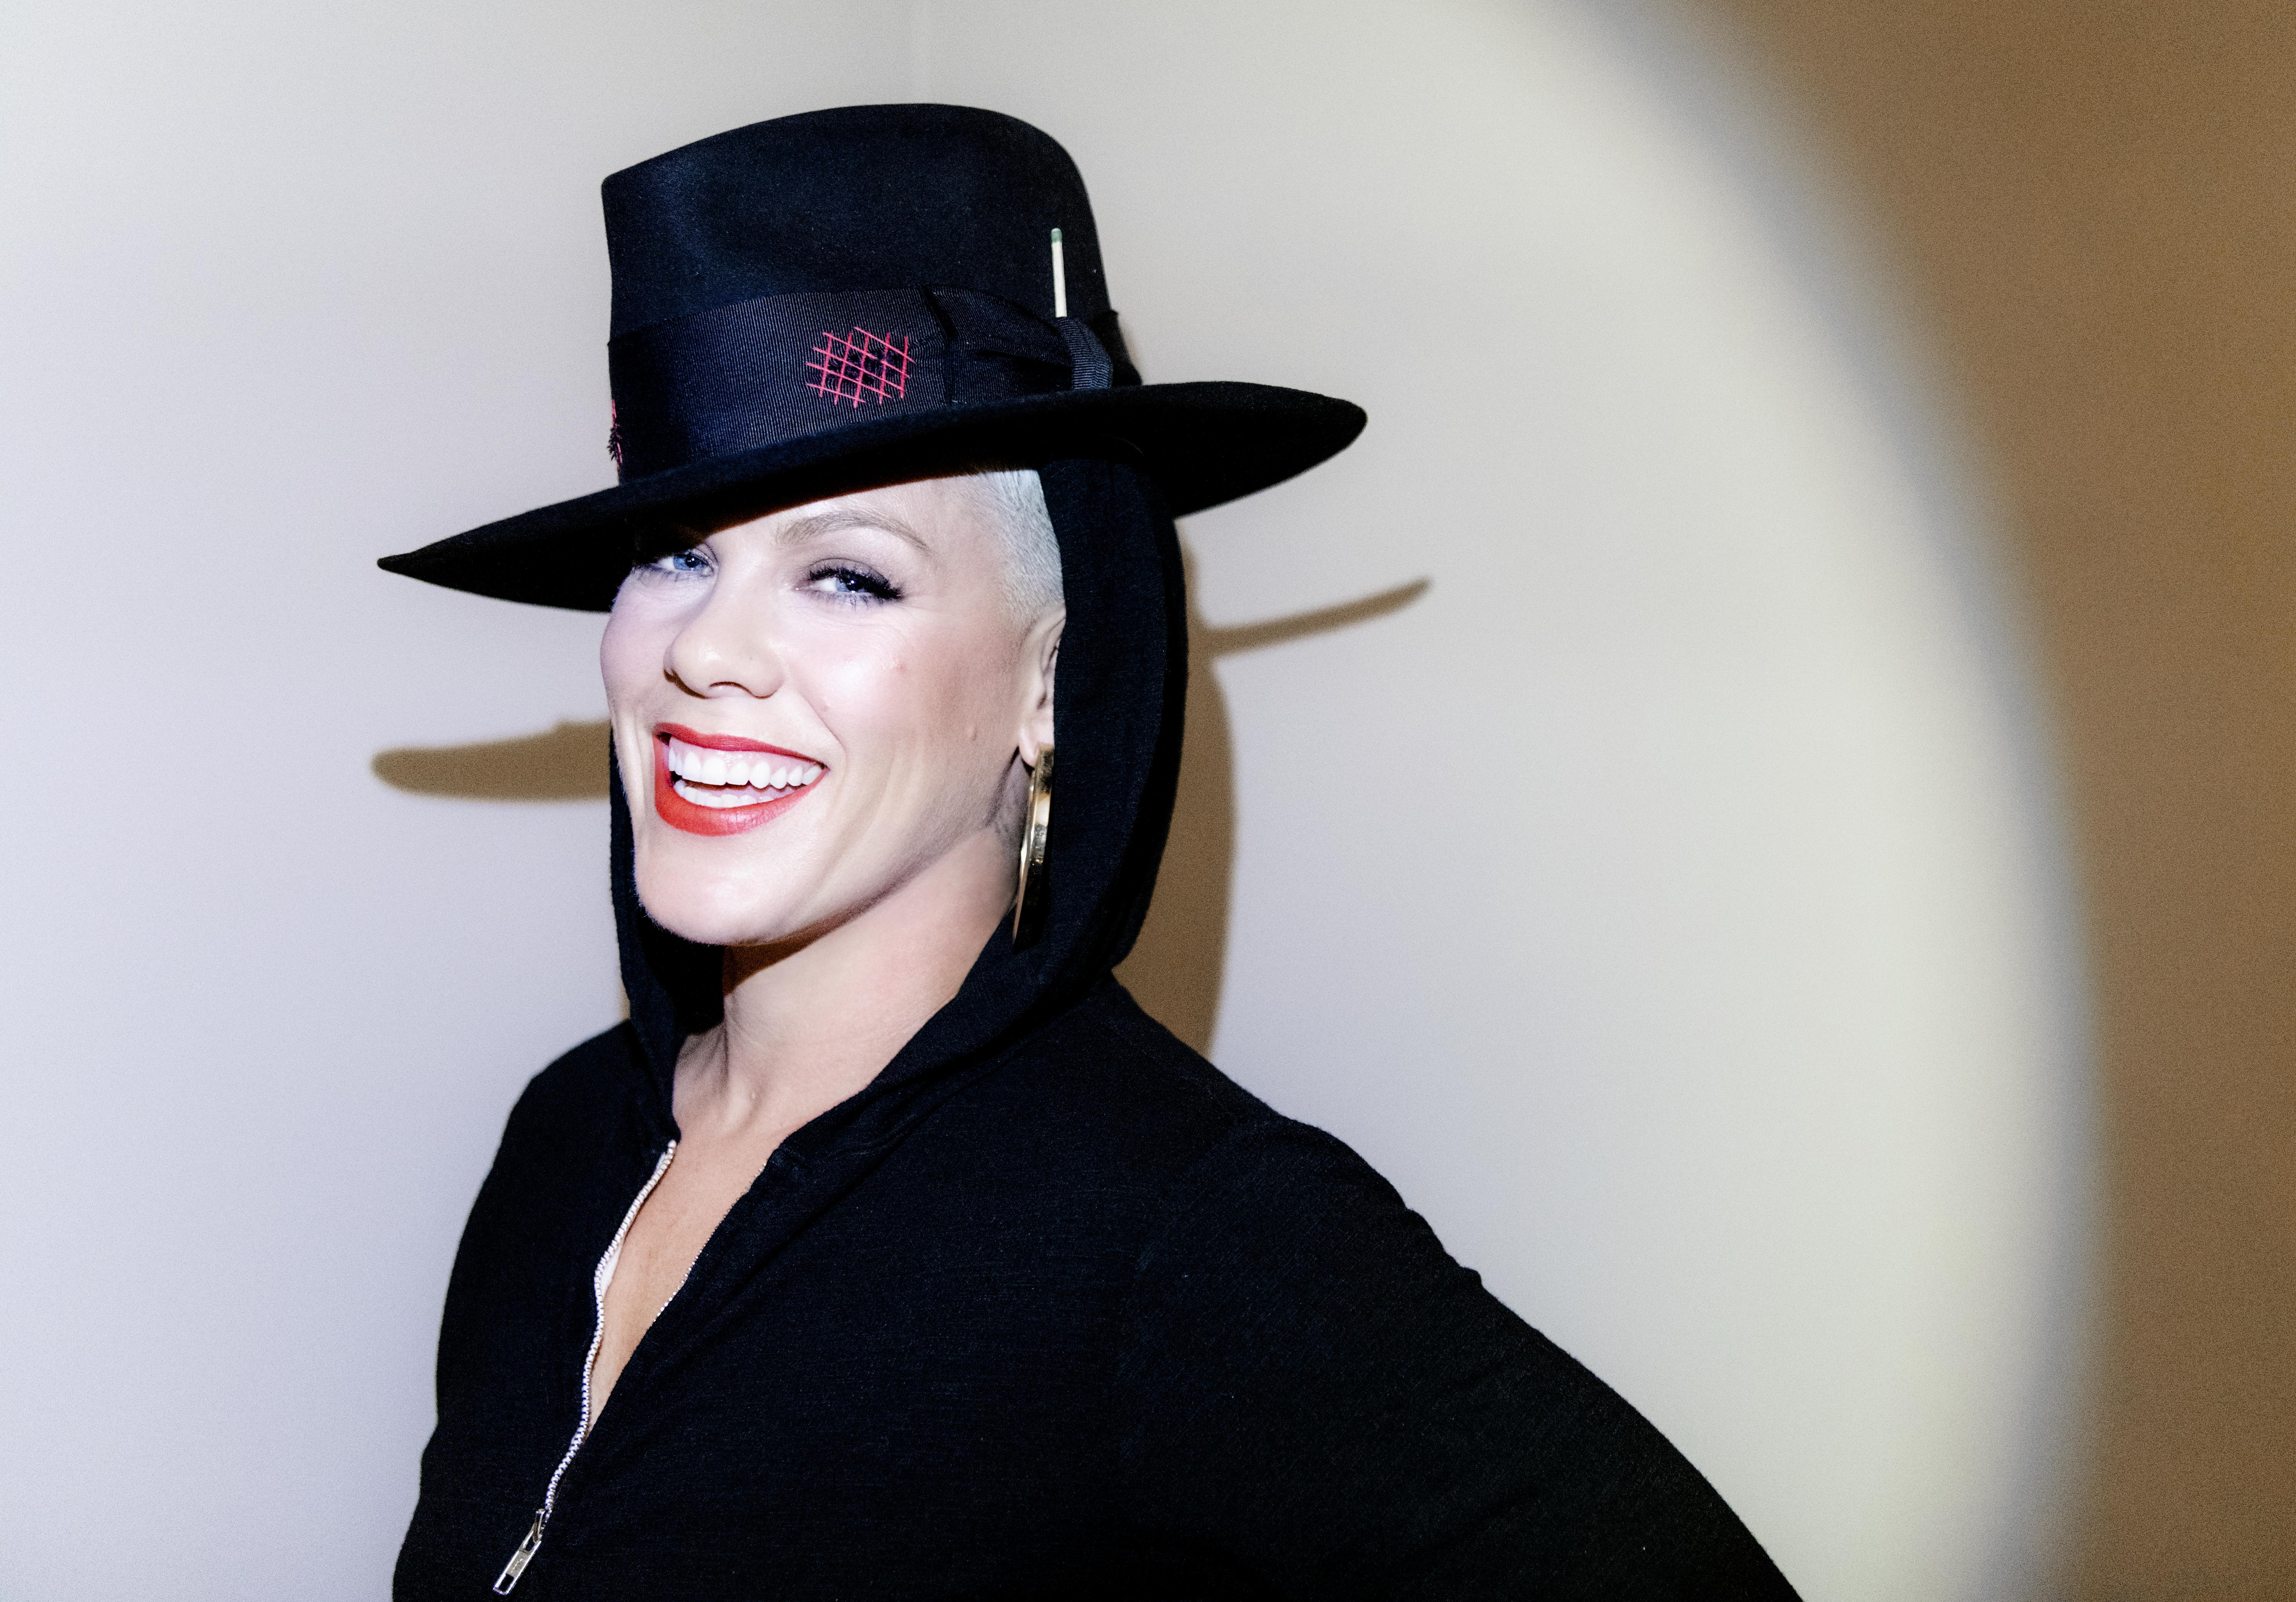 P!nk 'Hurts 2B Human' Review: Her Two-Decade Party Takes A Maudlin